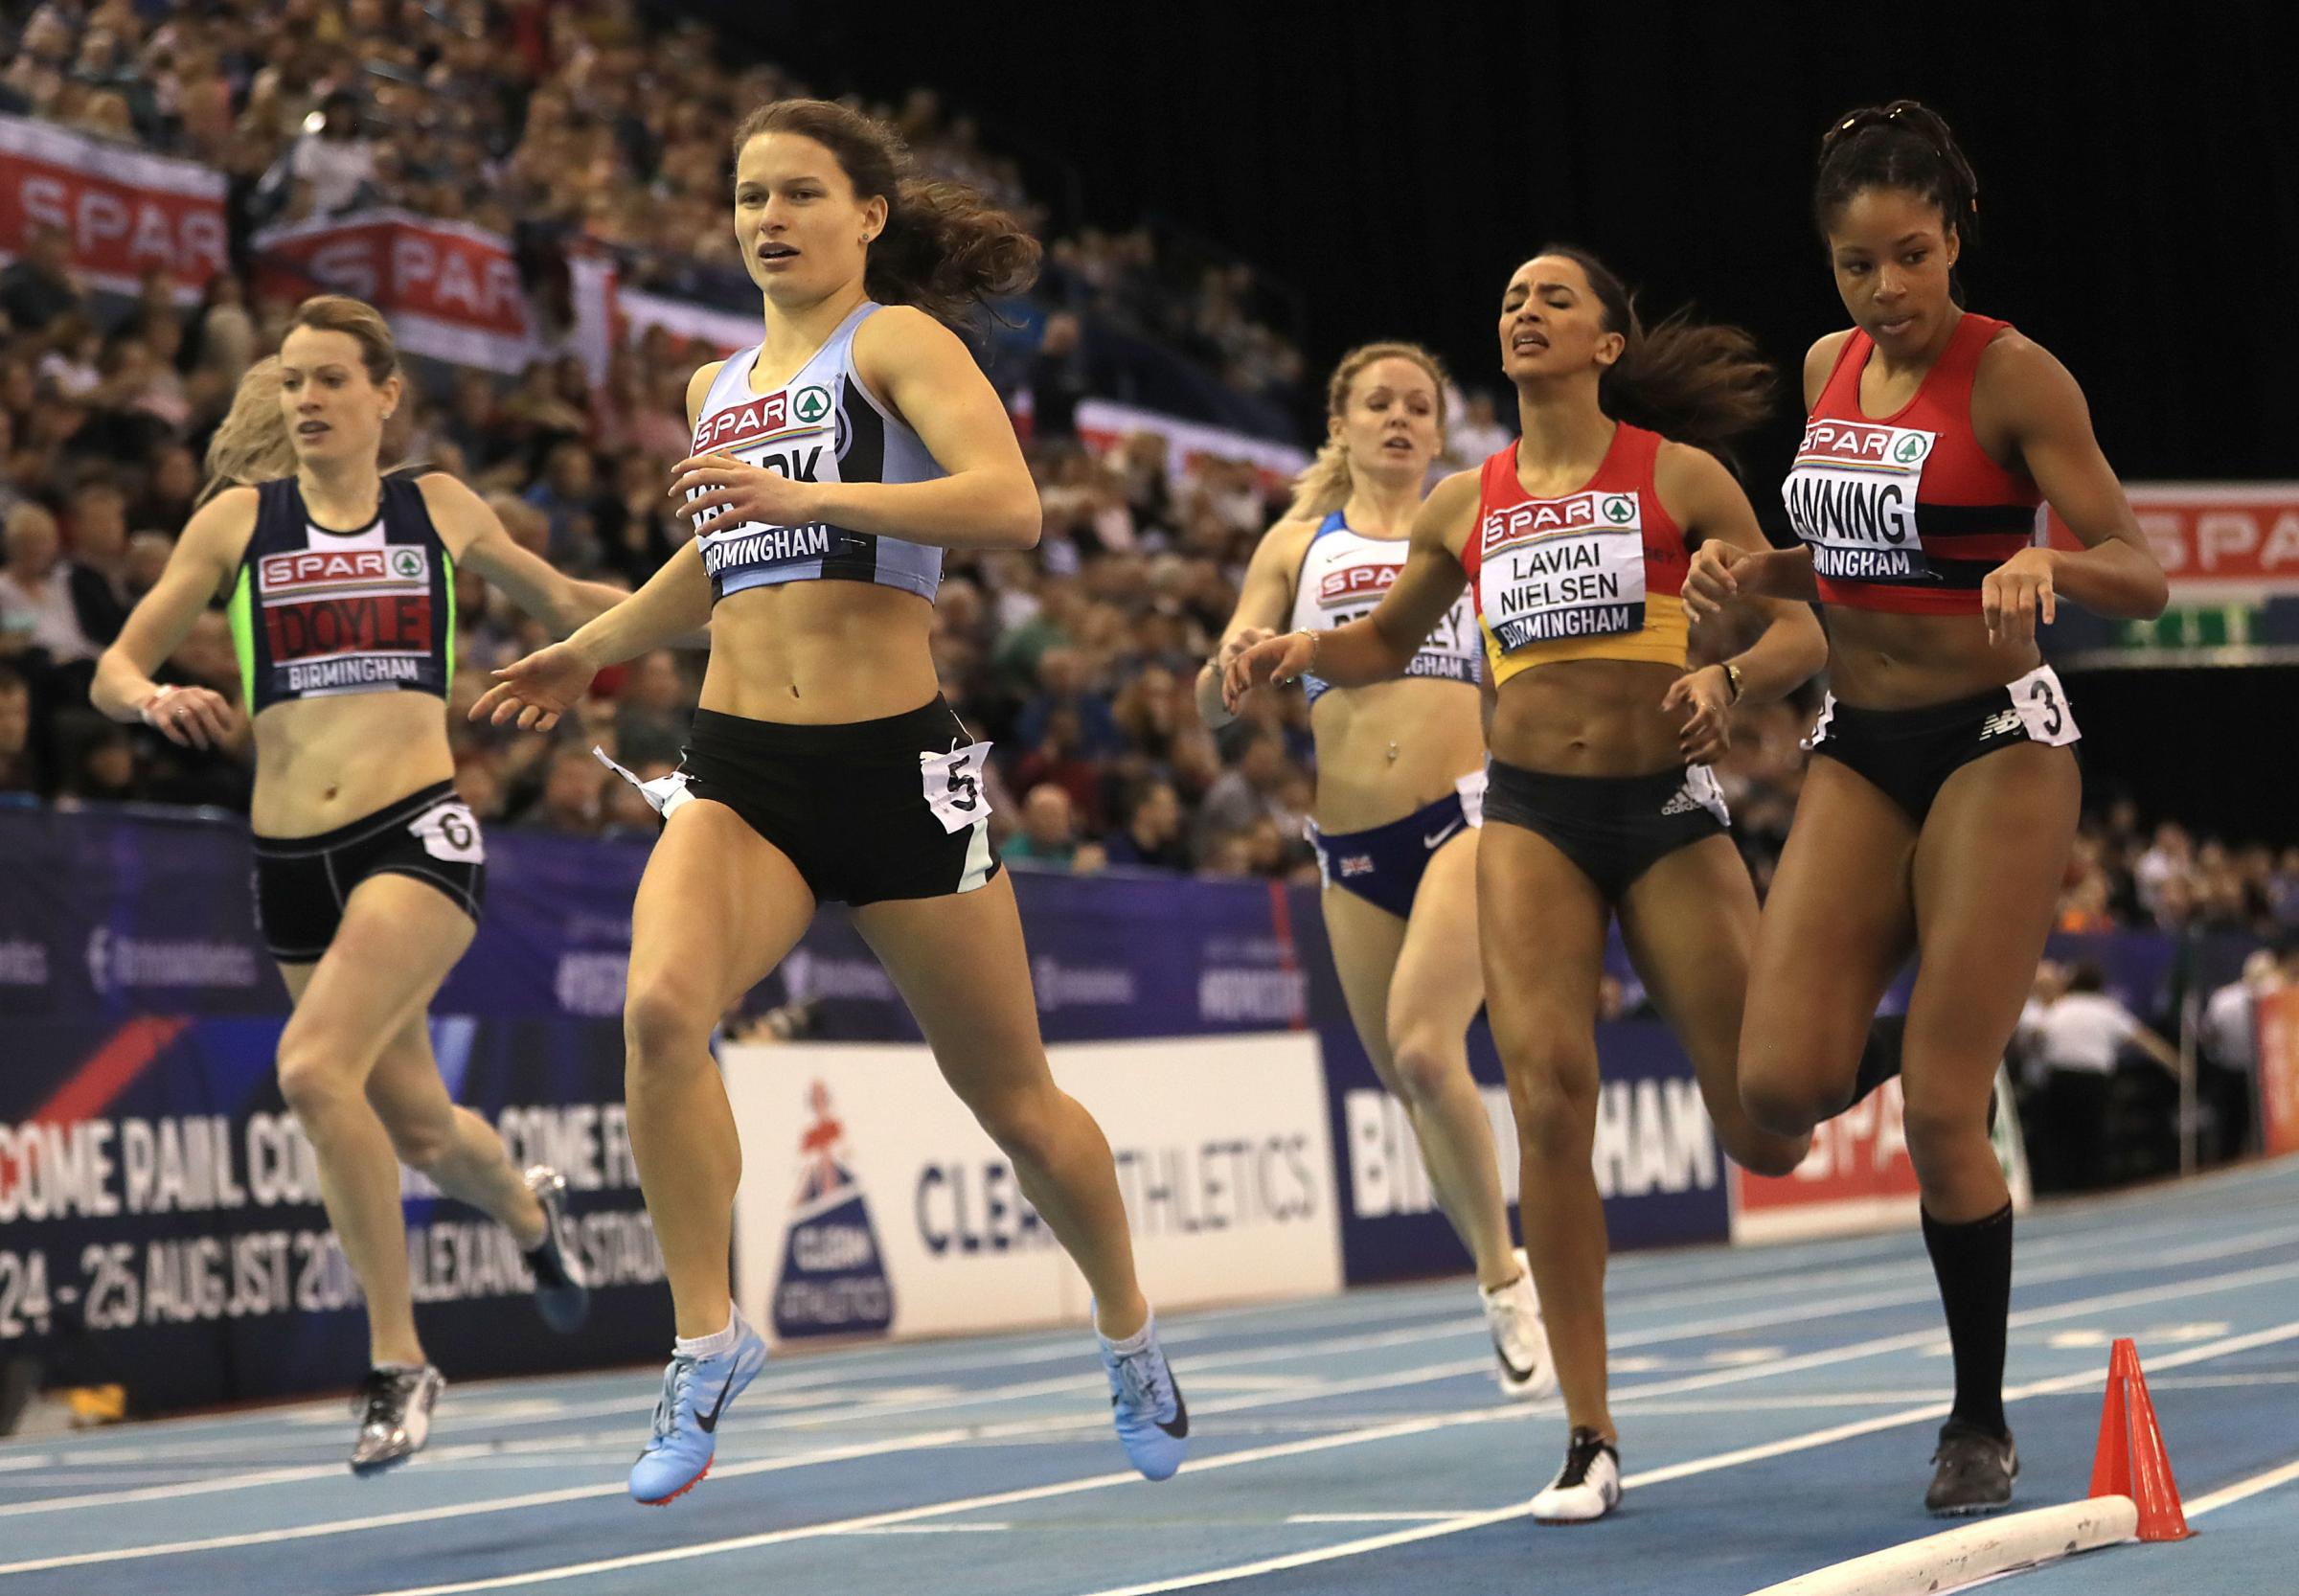 Amber Anning (right) breaking the British women's under-20 400 metres record which had stood since 1970